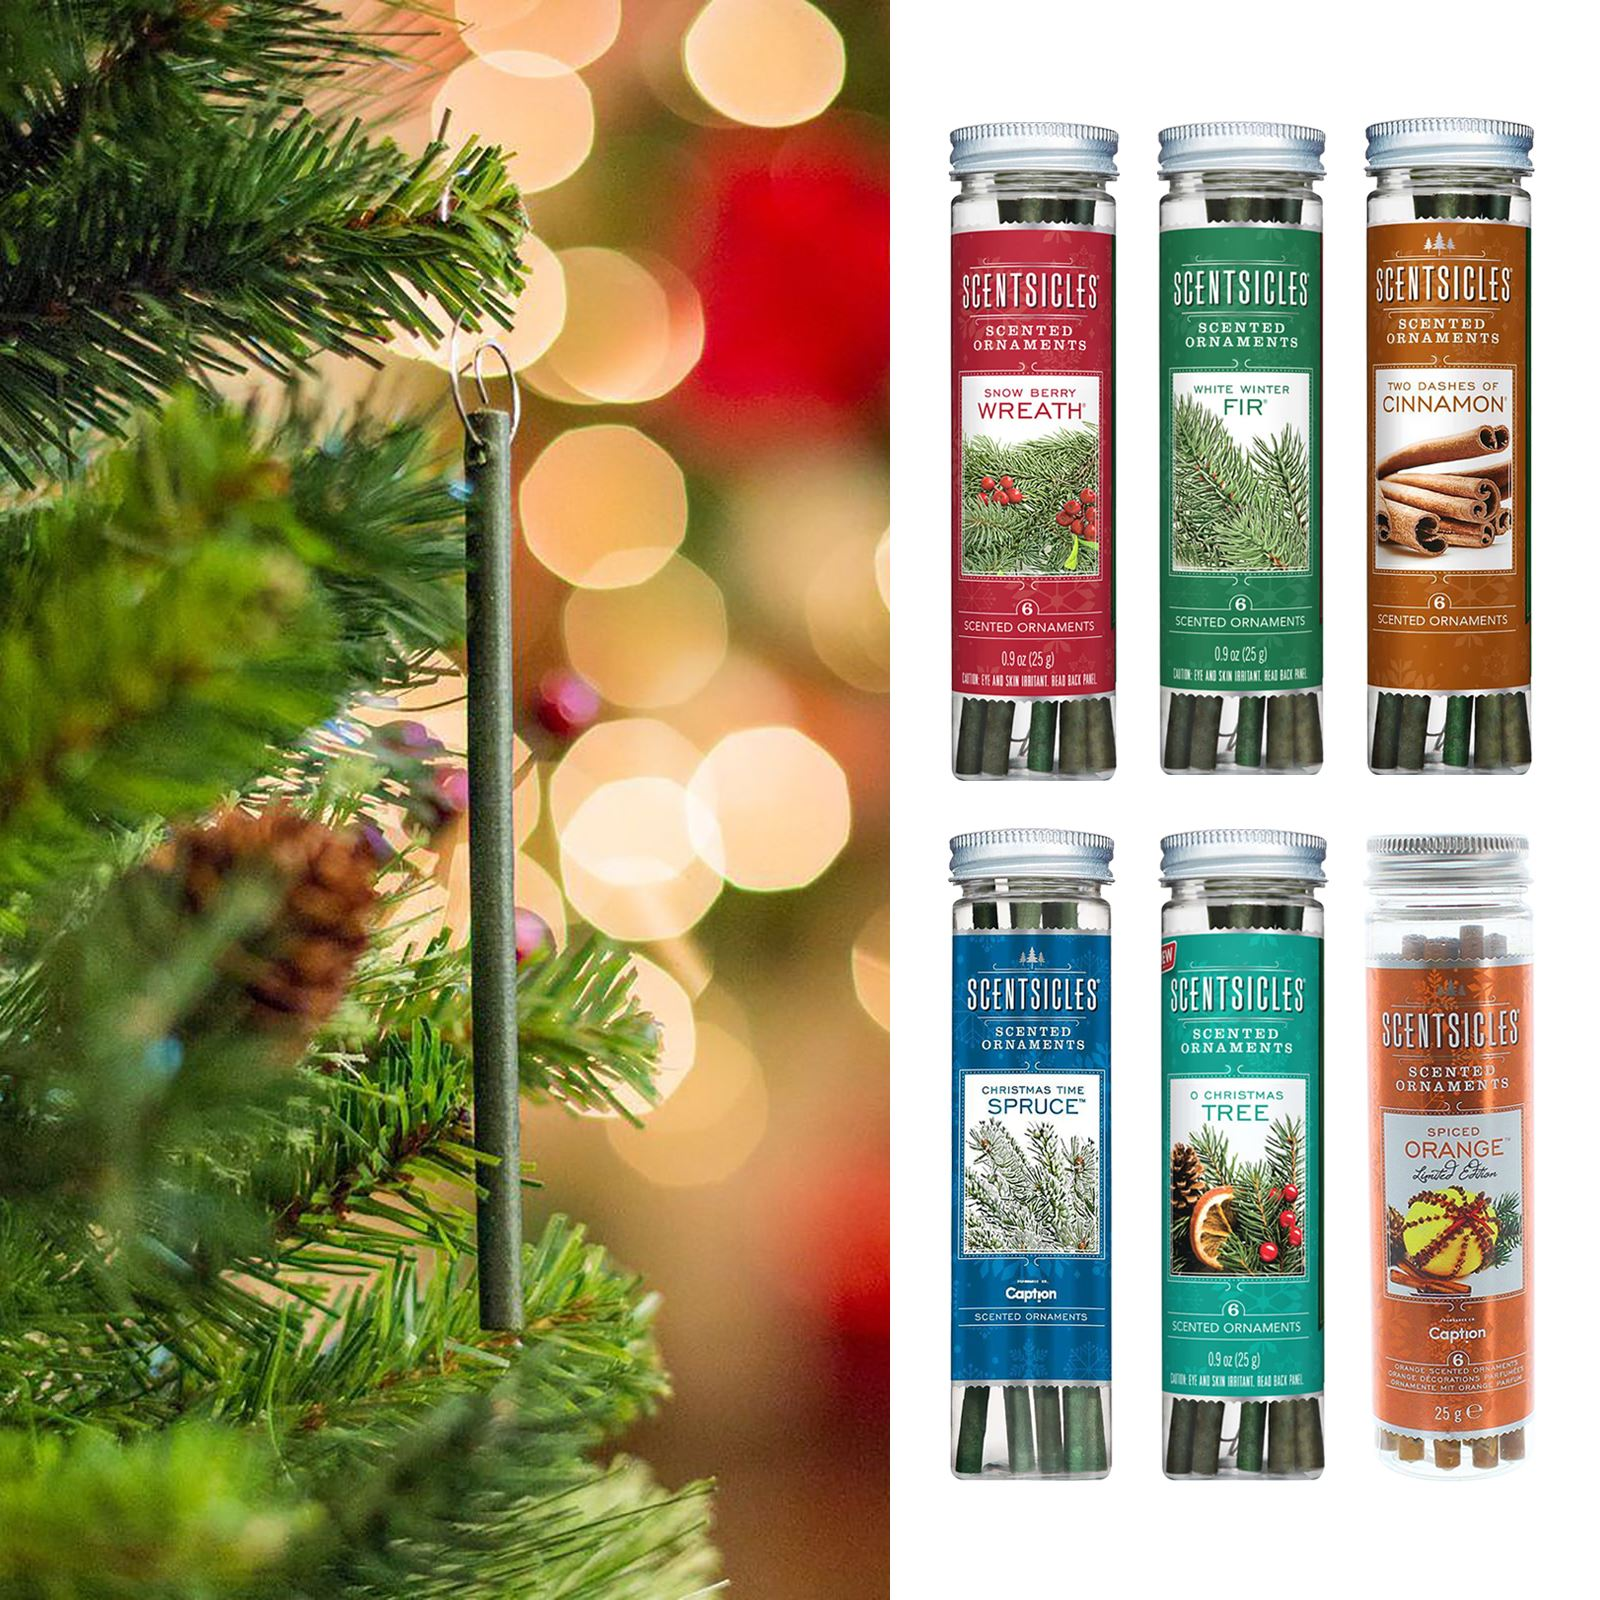 Scentsicles Scented Sticks Hanging Christmas Tree Decorations Buy 3